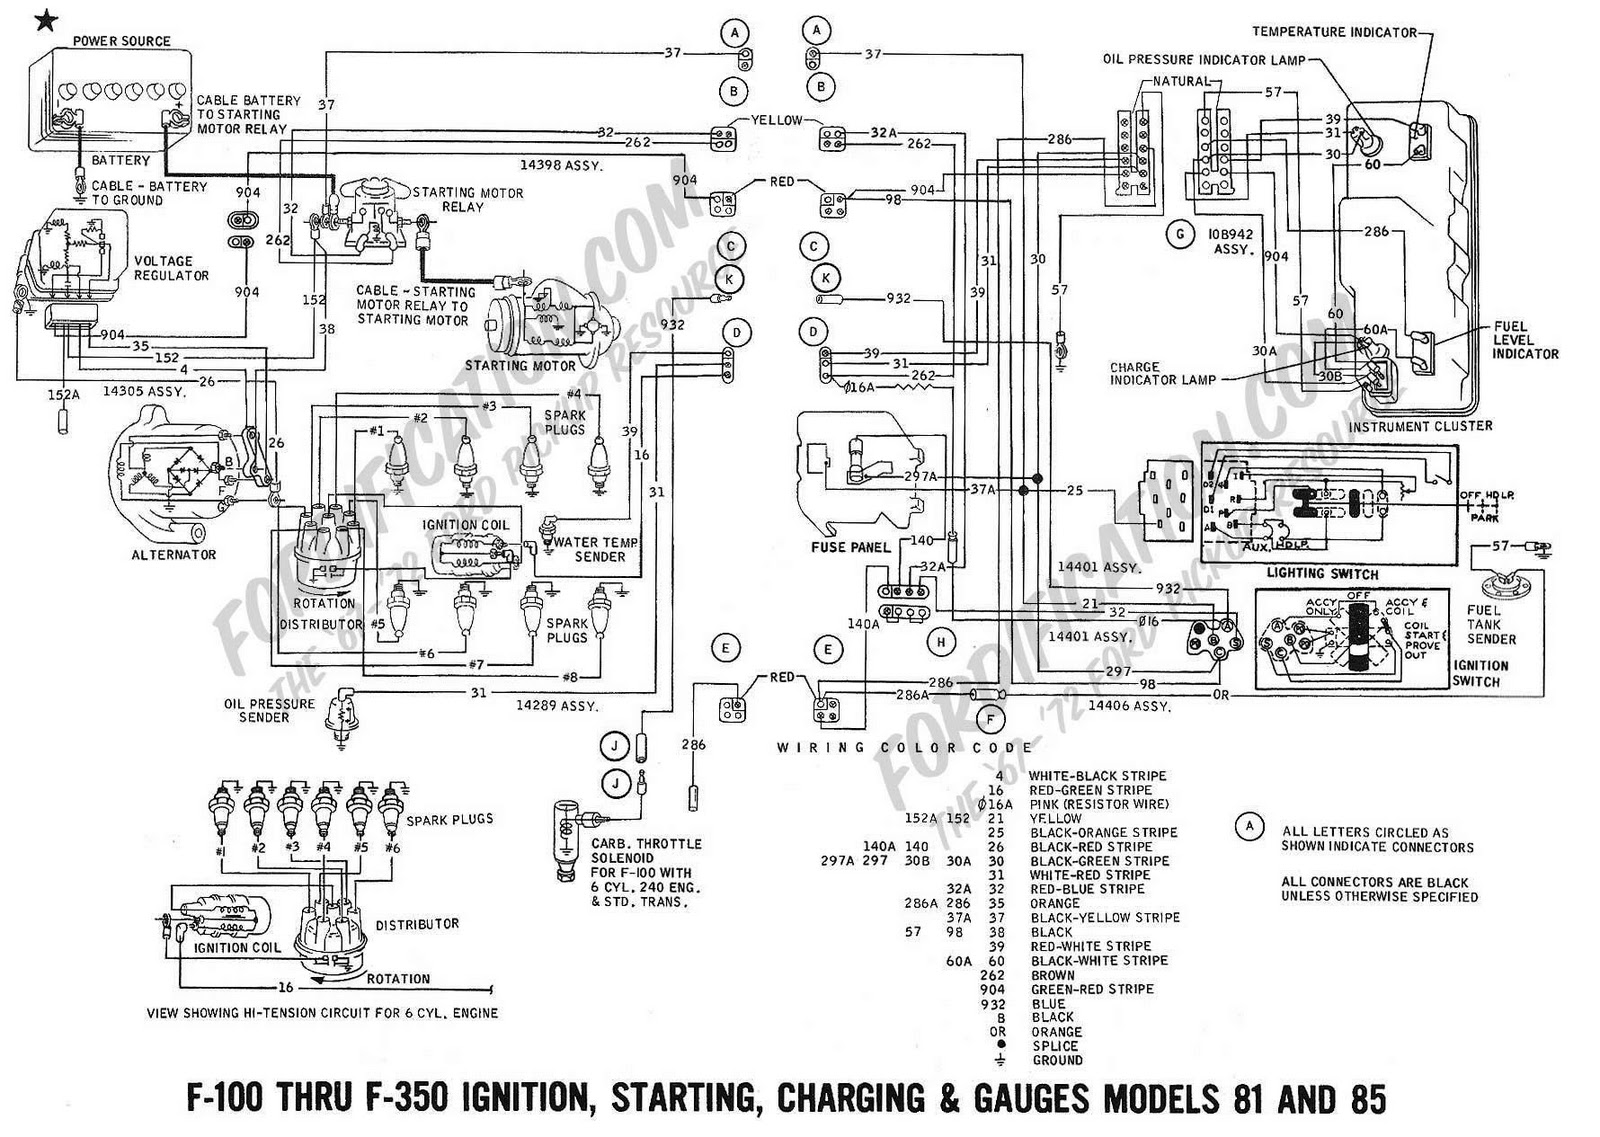 Ford F F Ignition C Starting C Charging C And Gauges Wiring Diagram besides Prefect Post as well  as well Dfxcxfxcxfxcdtawm Qxnti Nju Odyy   L Imgref in addition Dsc. on 1956 ford fairlane wiring harness diagram